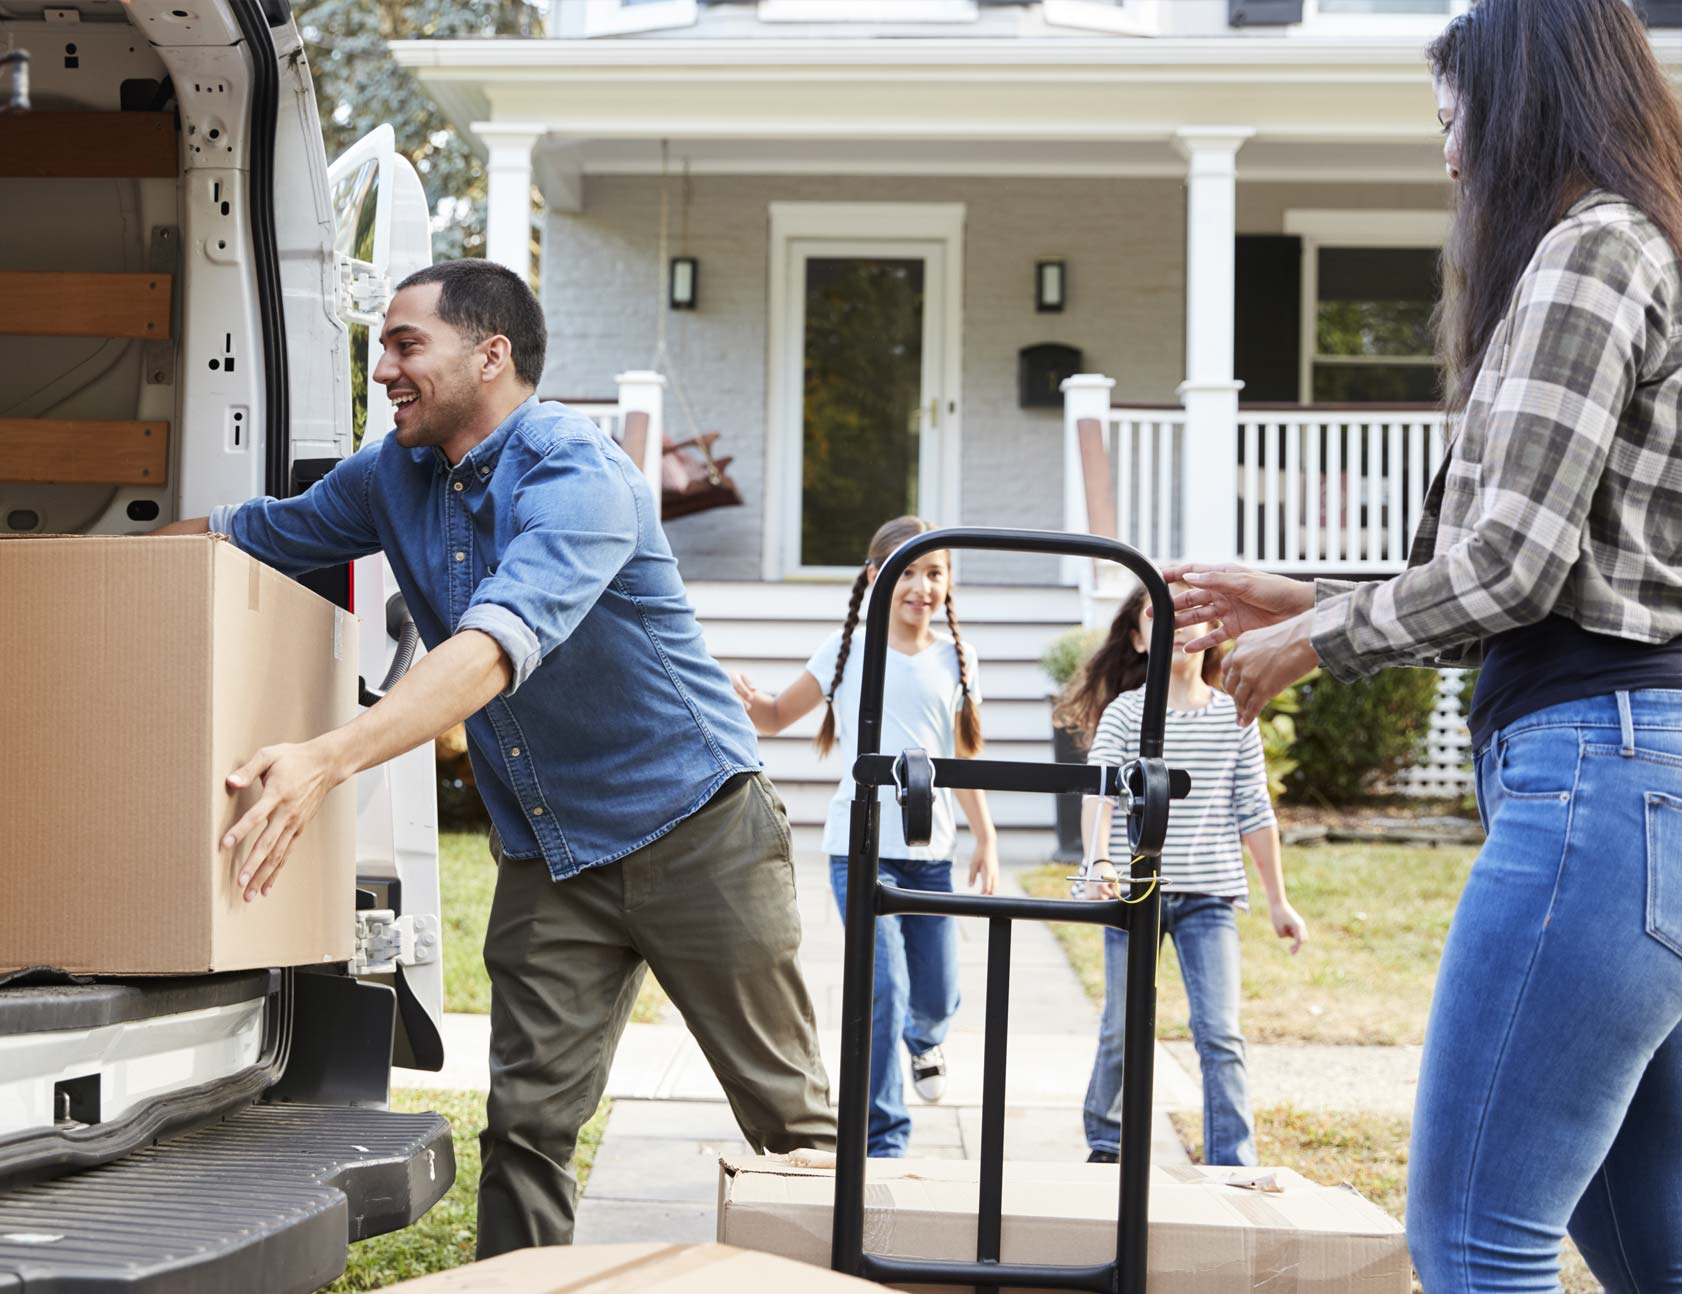 A self-employed homeowner on moving day